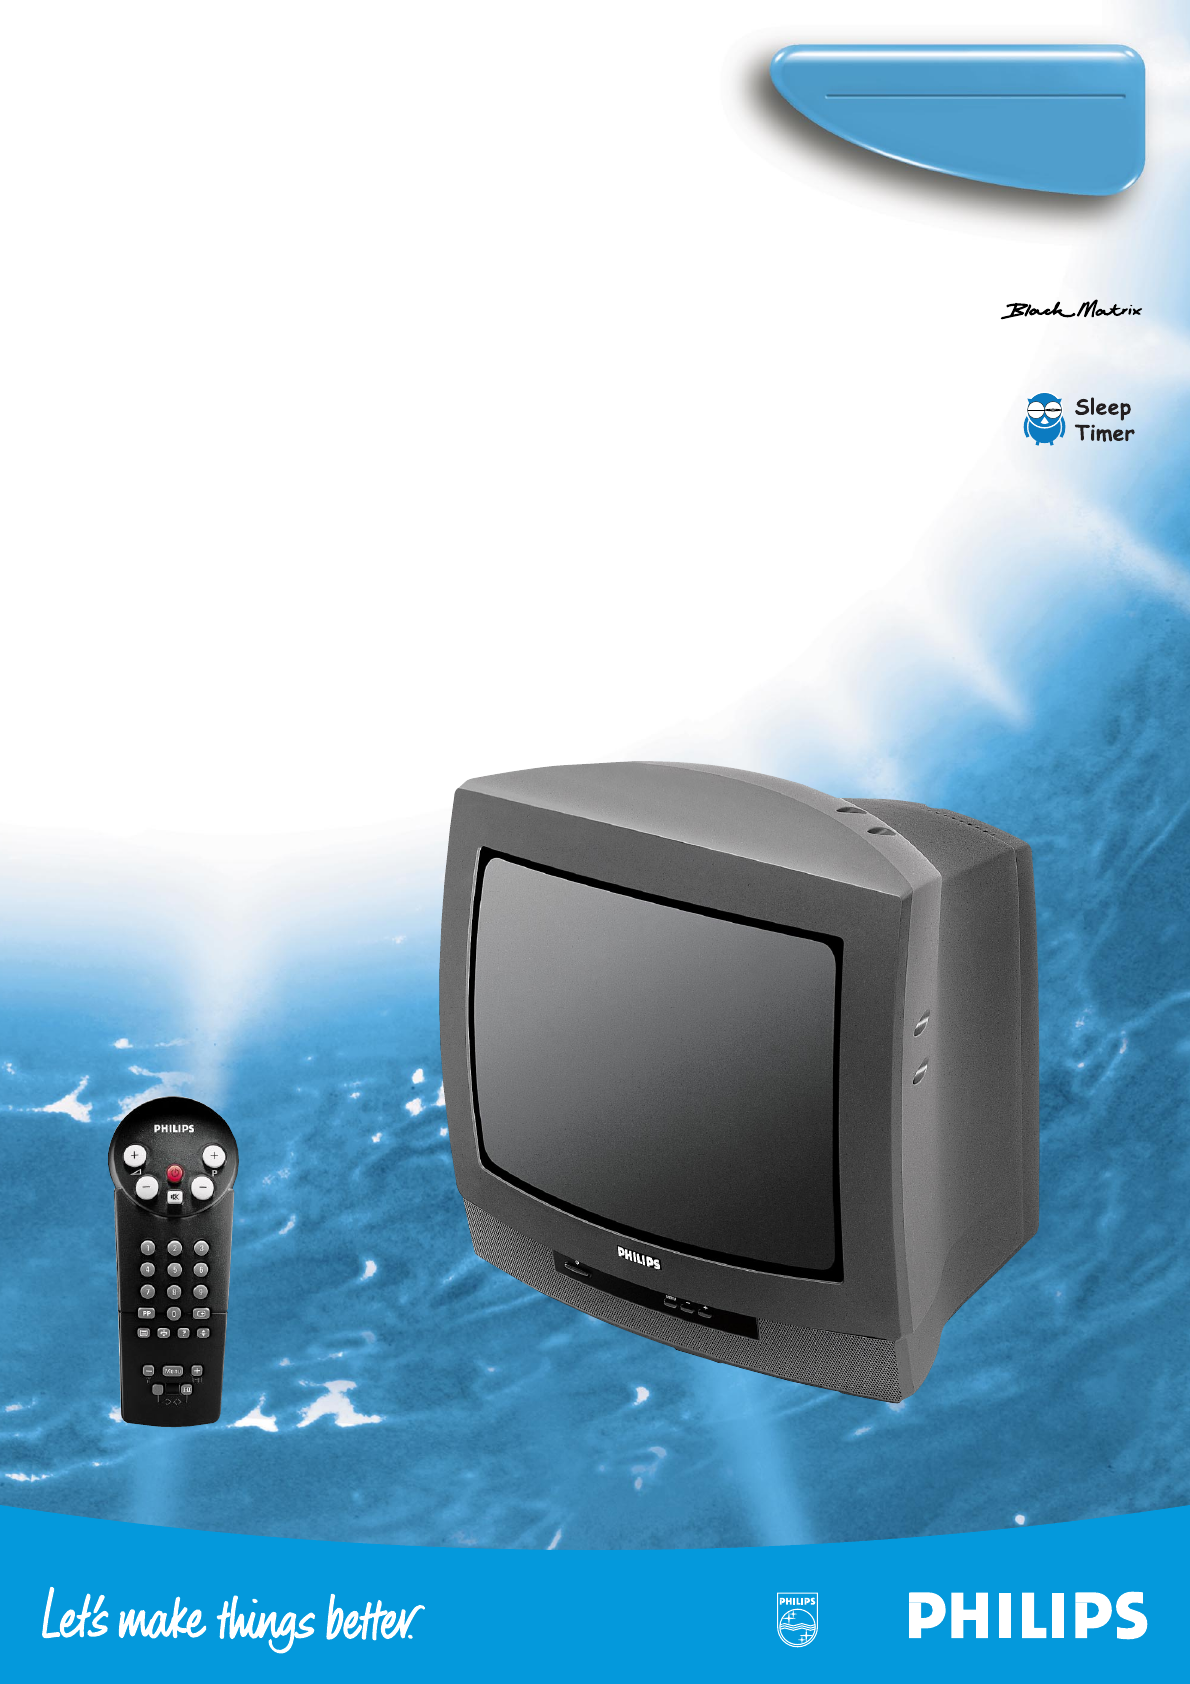 philips crt television 20pt1342 user guide manualsonline com philips 55 tv manual philips tv user manual